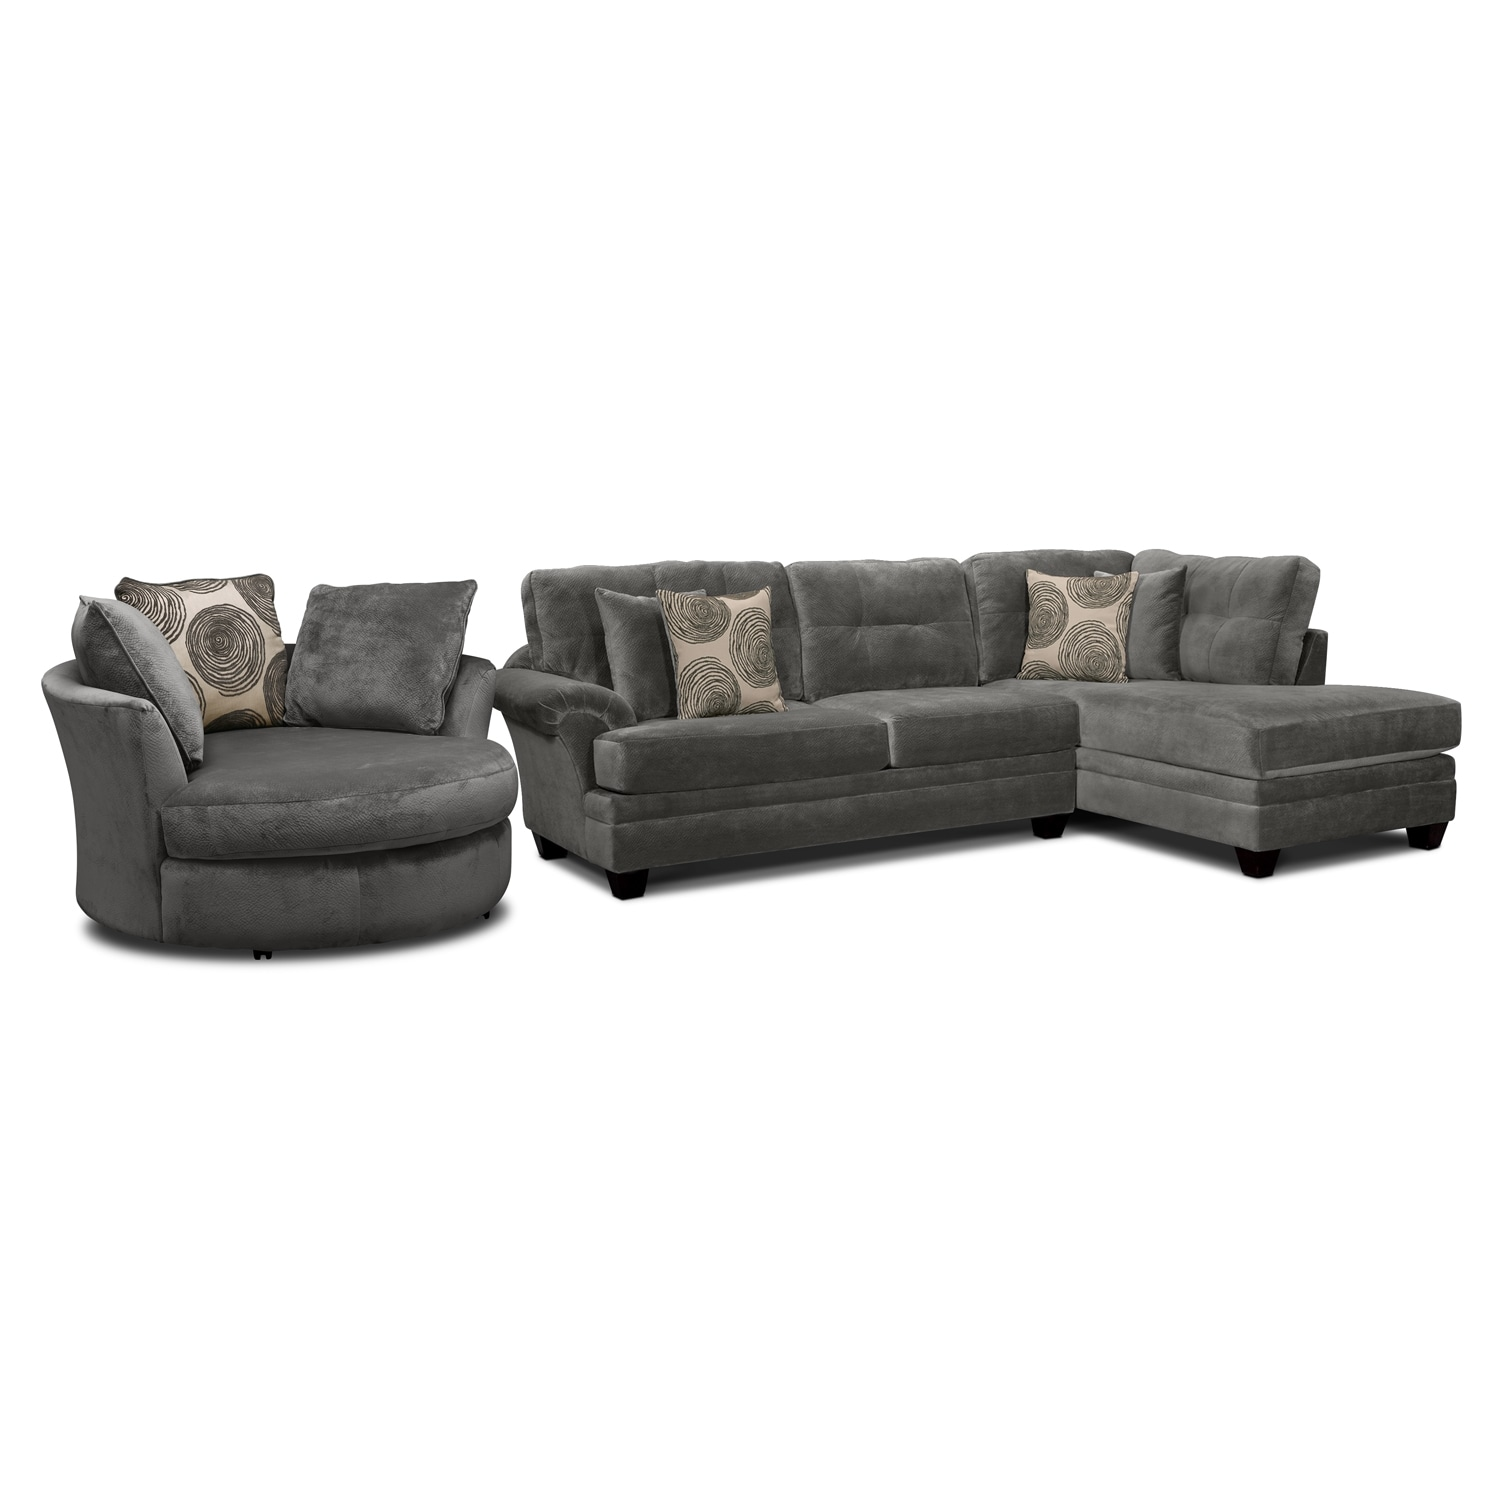 Cordelle 2 Piece Sectional With Right Facing Chaise And